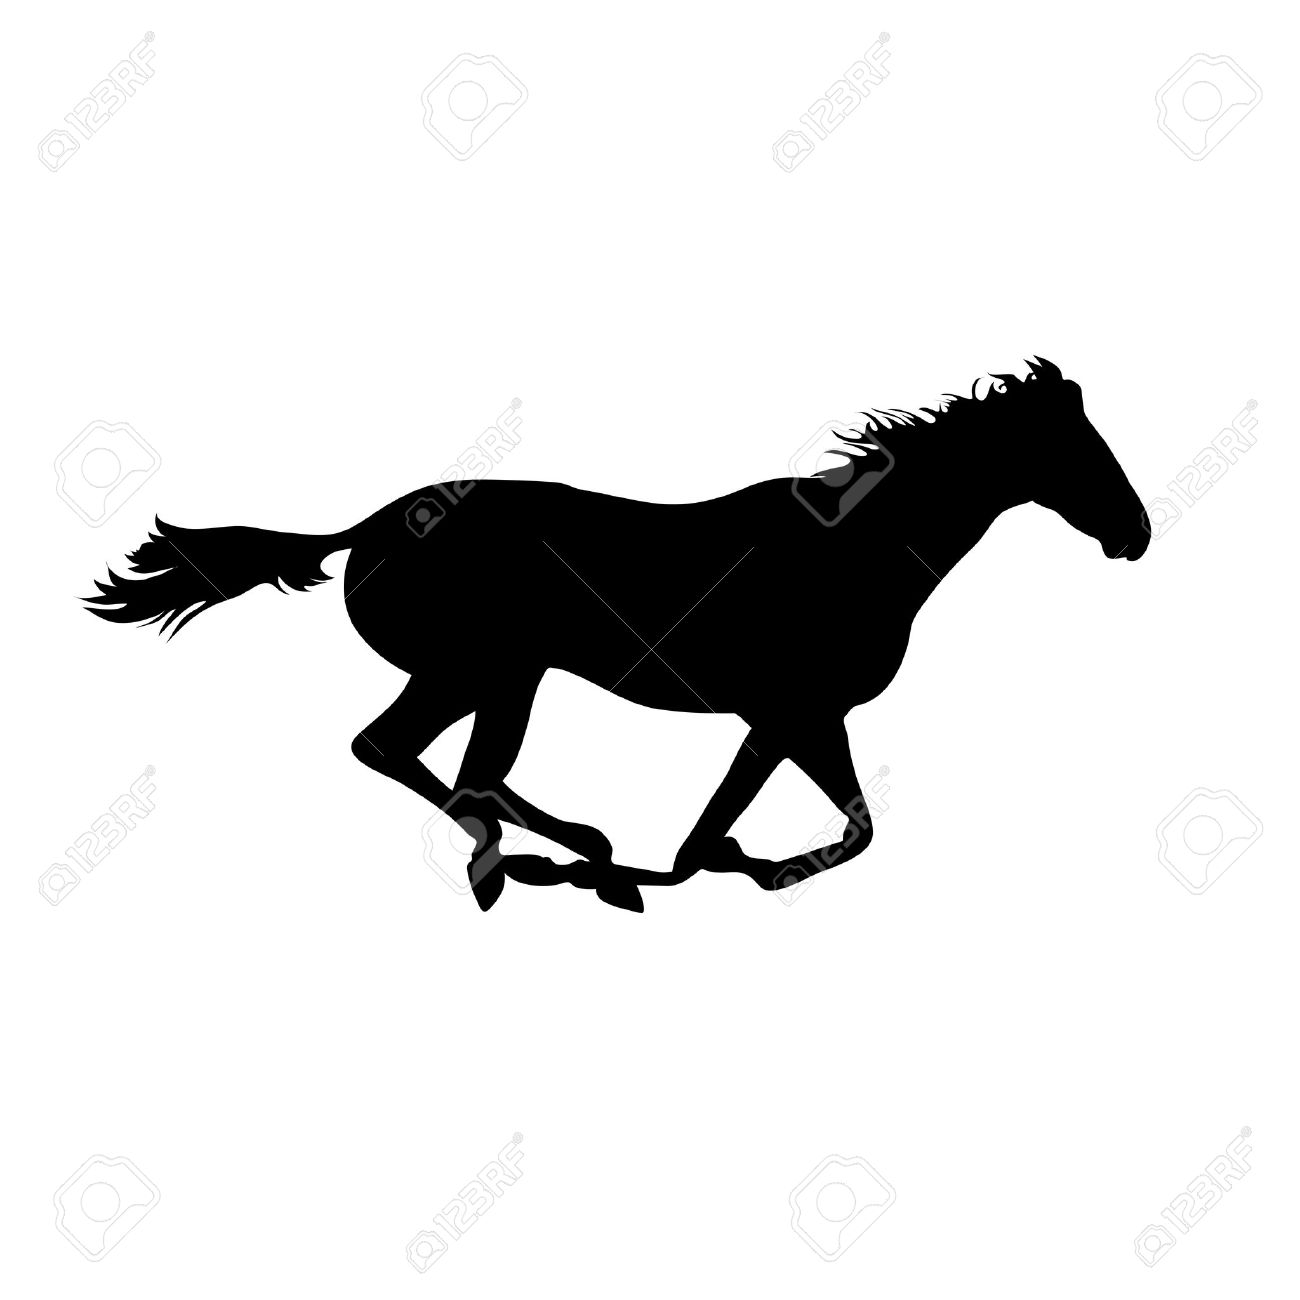 Vector Horse Images Silhouette Horse Drawings Horse Posters Royalty Free Cliparts Vectors And Stock Illustration Image 40263537